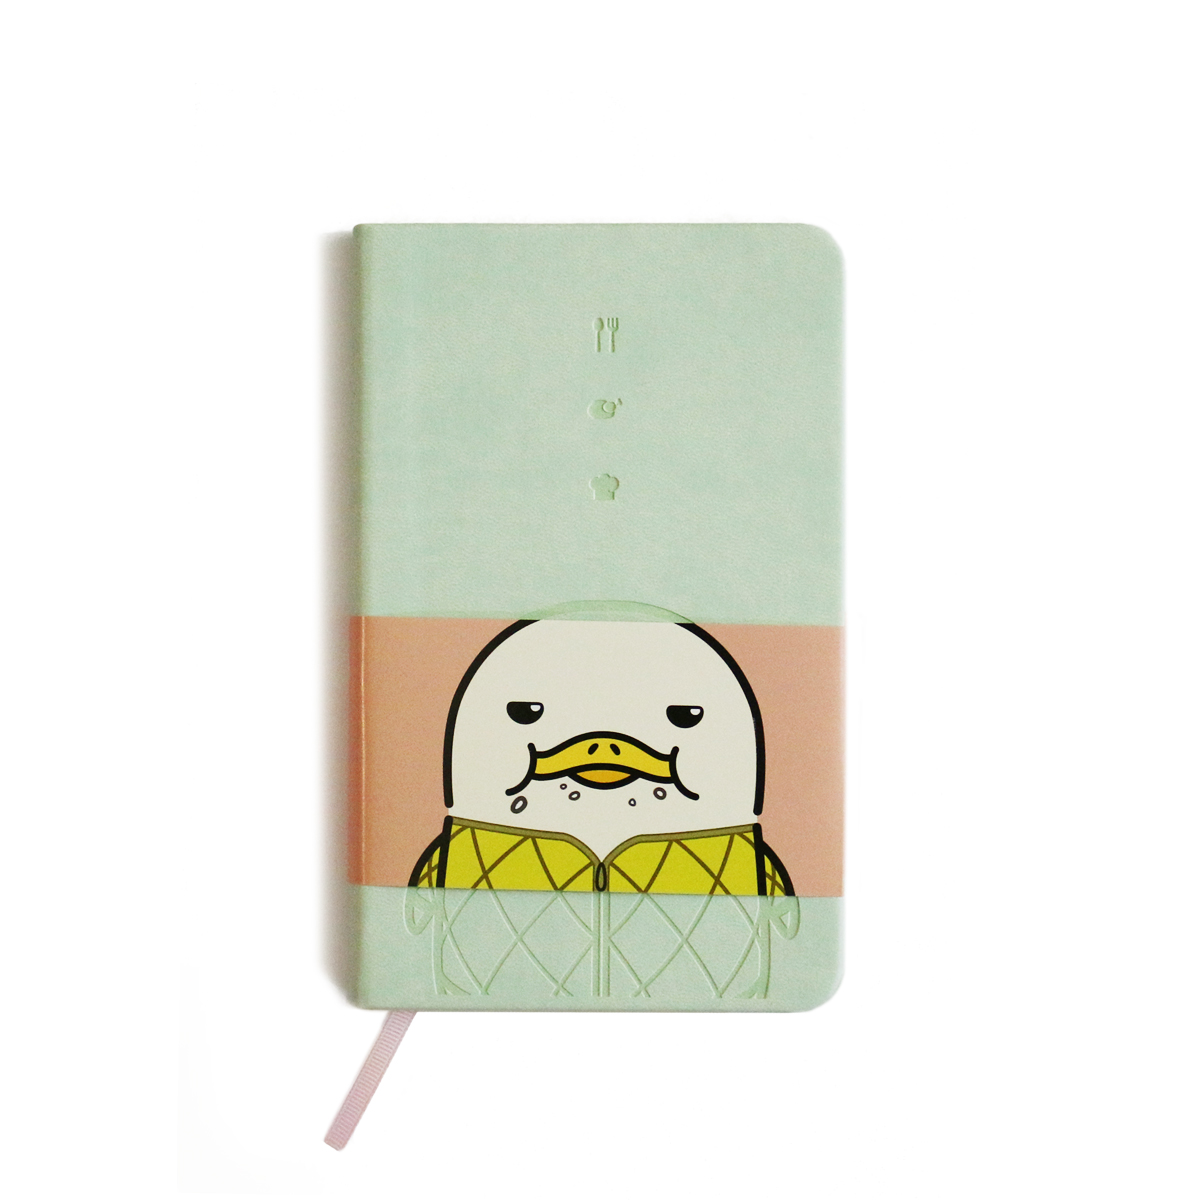 [WORKS x DUCKOO] YUMYUM NOTEBOOK